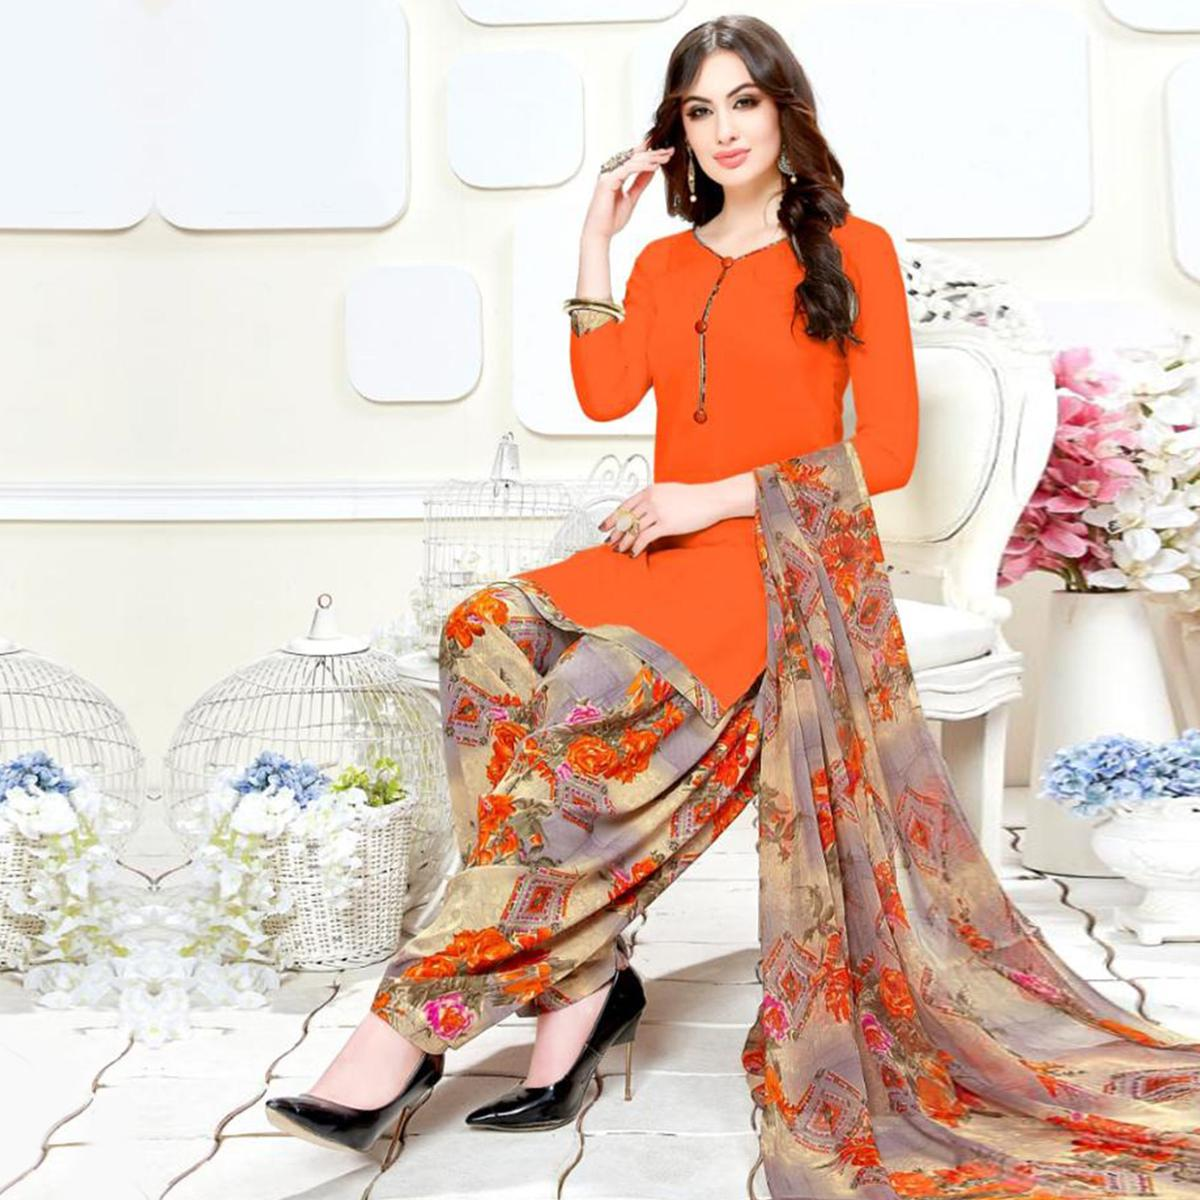 Marvellous Orange Colored Casual Wear Printed Crepe Patiala Suit